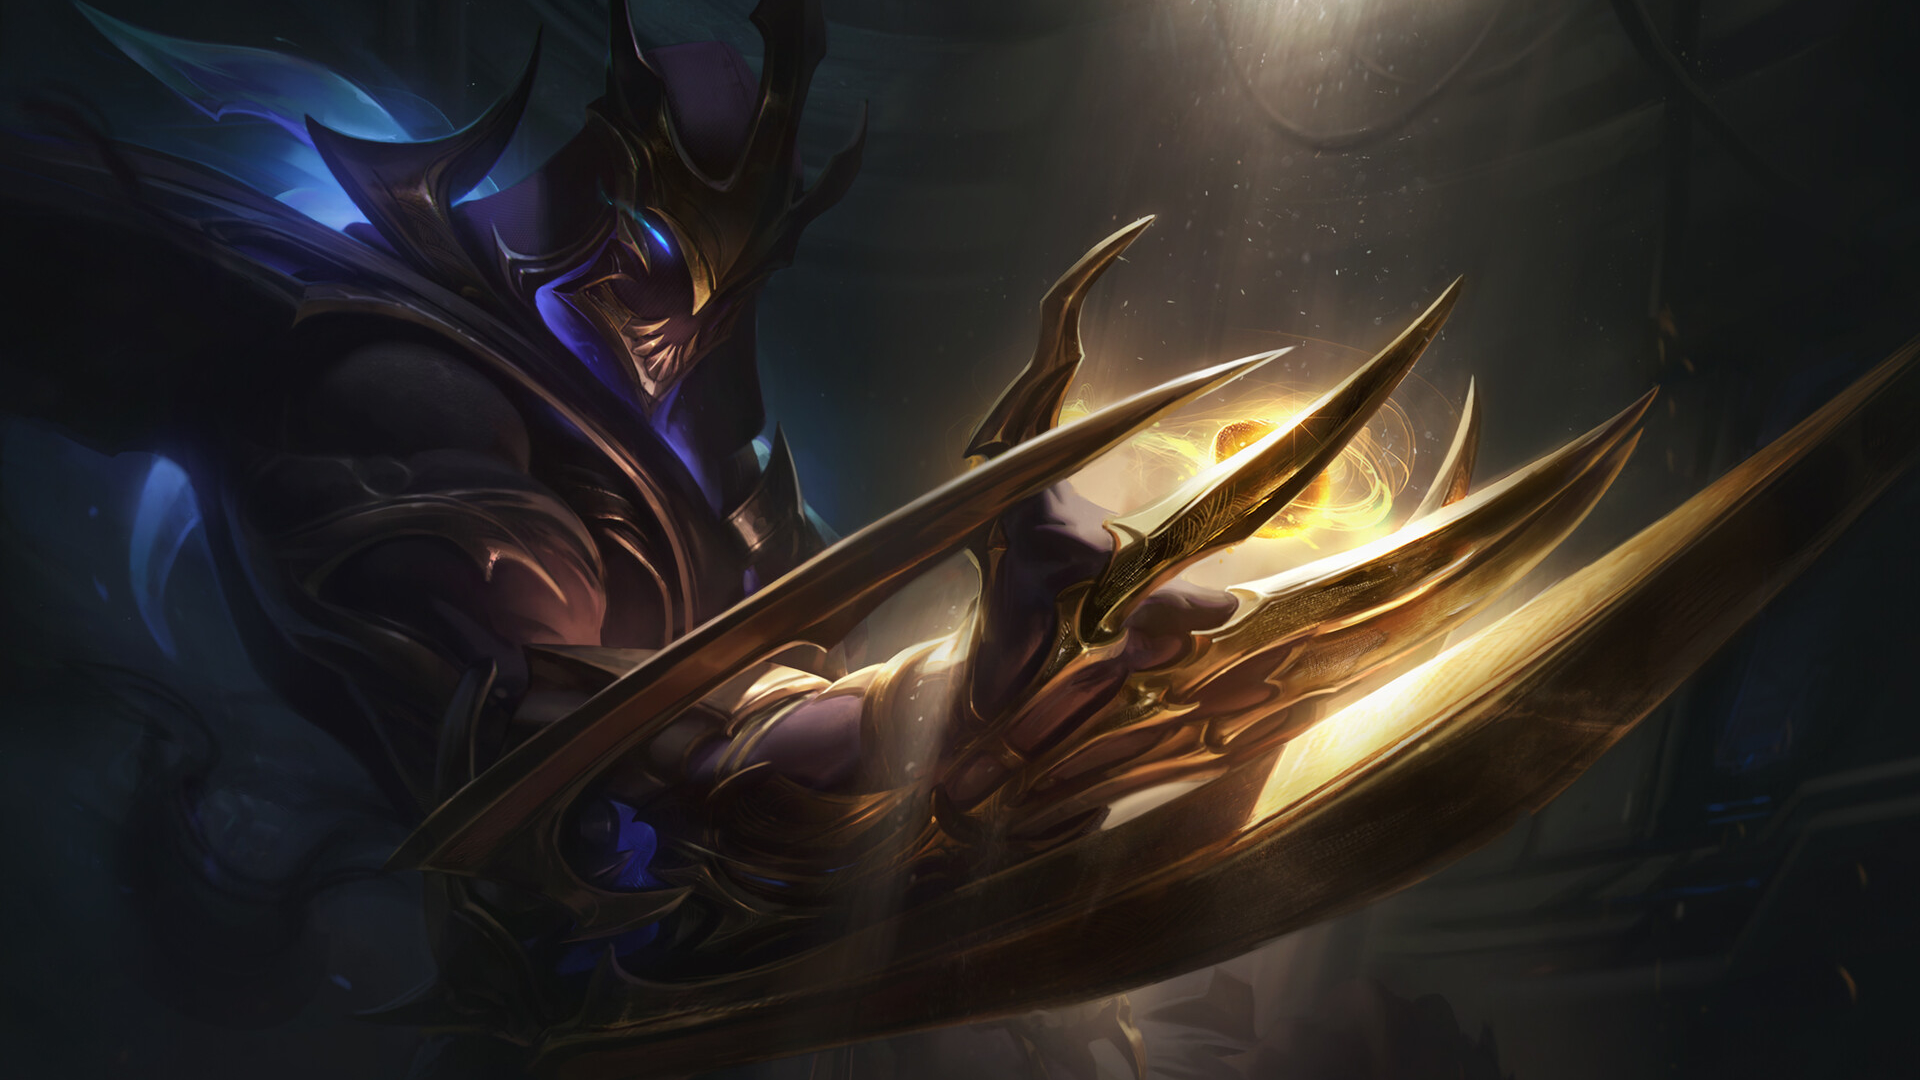 Wallpaper of Zed, League Of Legends, Video Game background ...